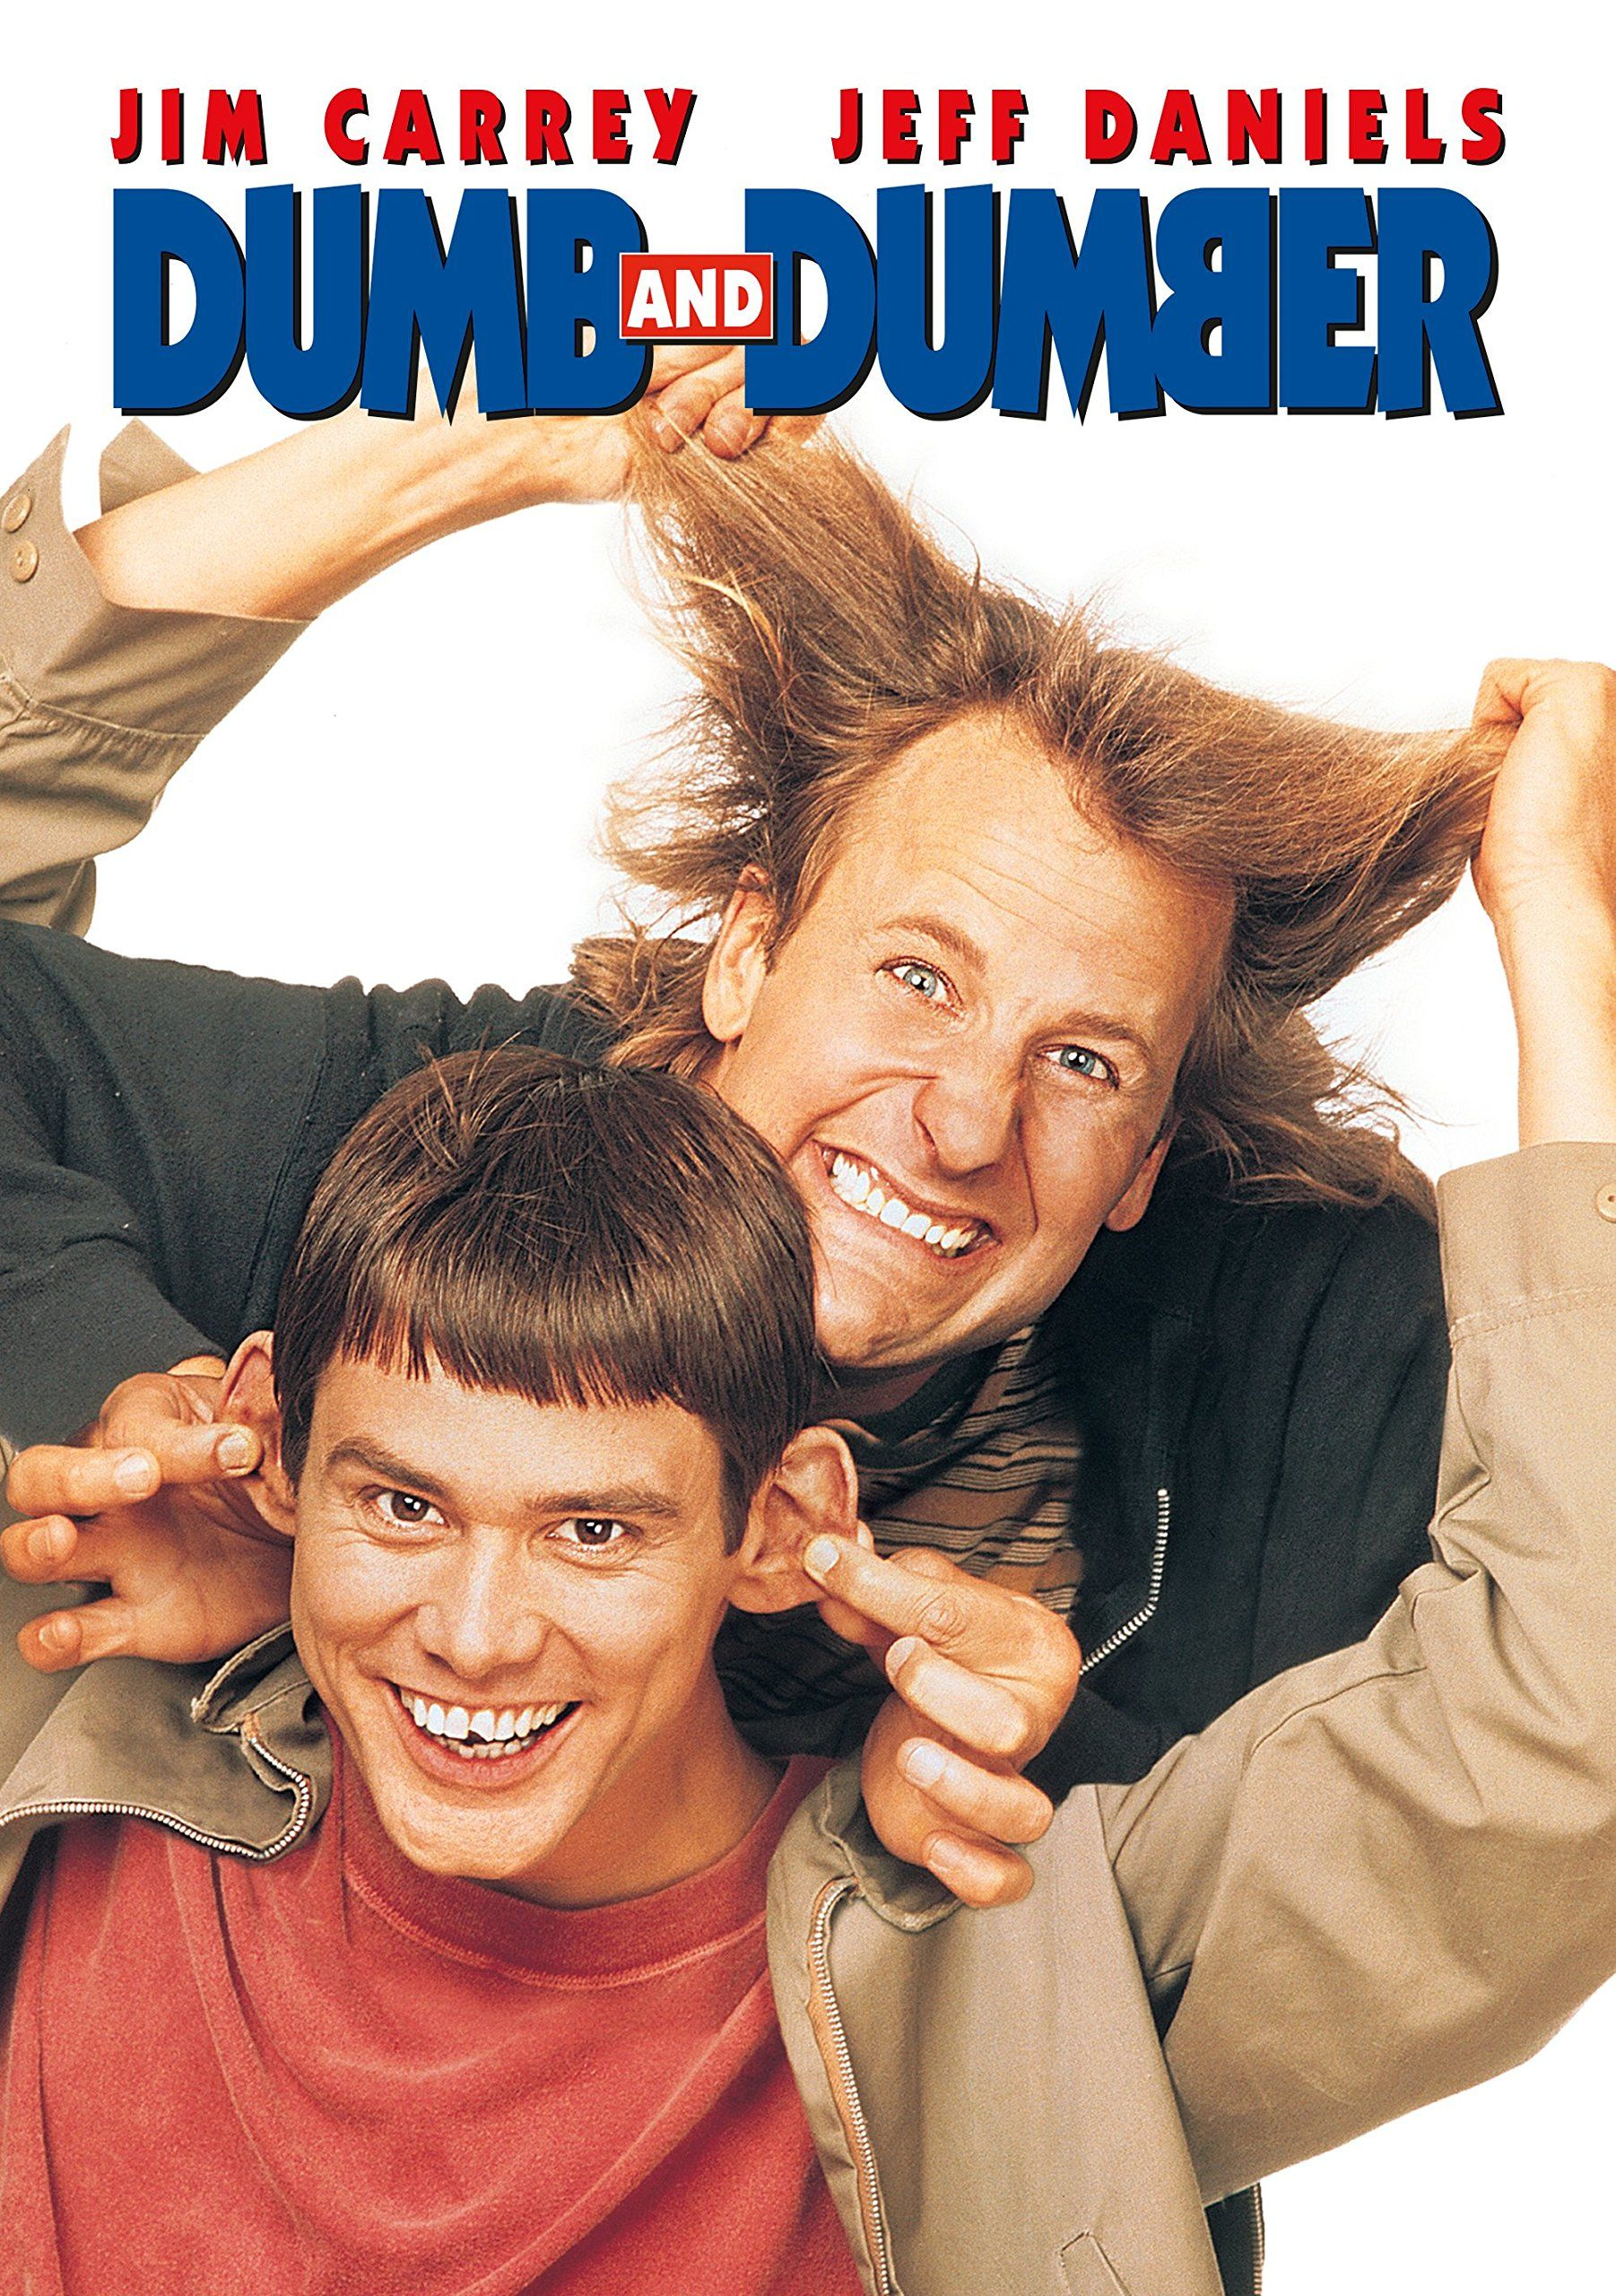 Dumb and Dumber (1994) Two rather—er—unintelligent friends (Jim Carrey and Jeff Daniels; which is dumb and which is dumber is hard to tell) mistake a suitcase of ransom money as mistakenly lost, and set out on a cross-country trip to return it to its owner. Hijinks ensue.